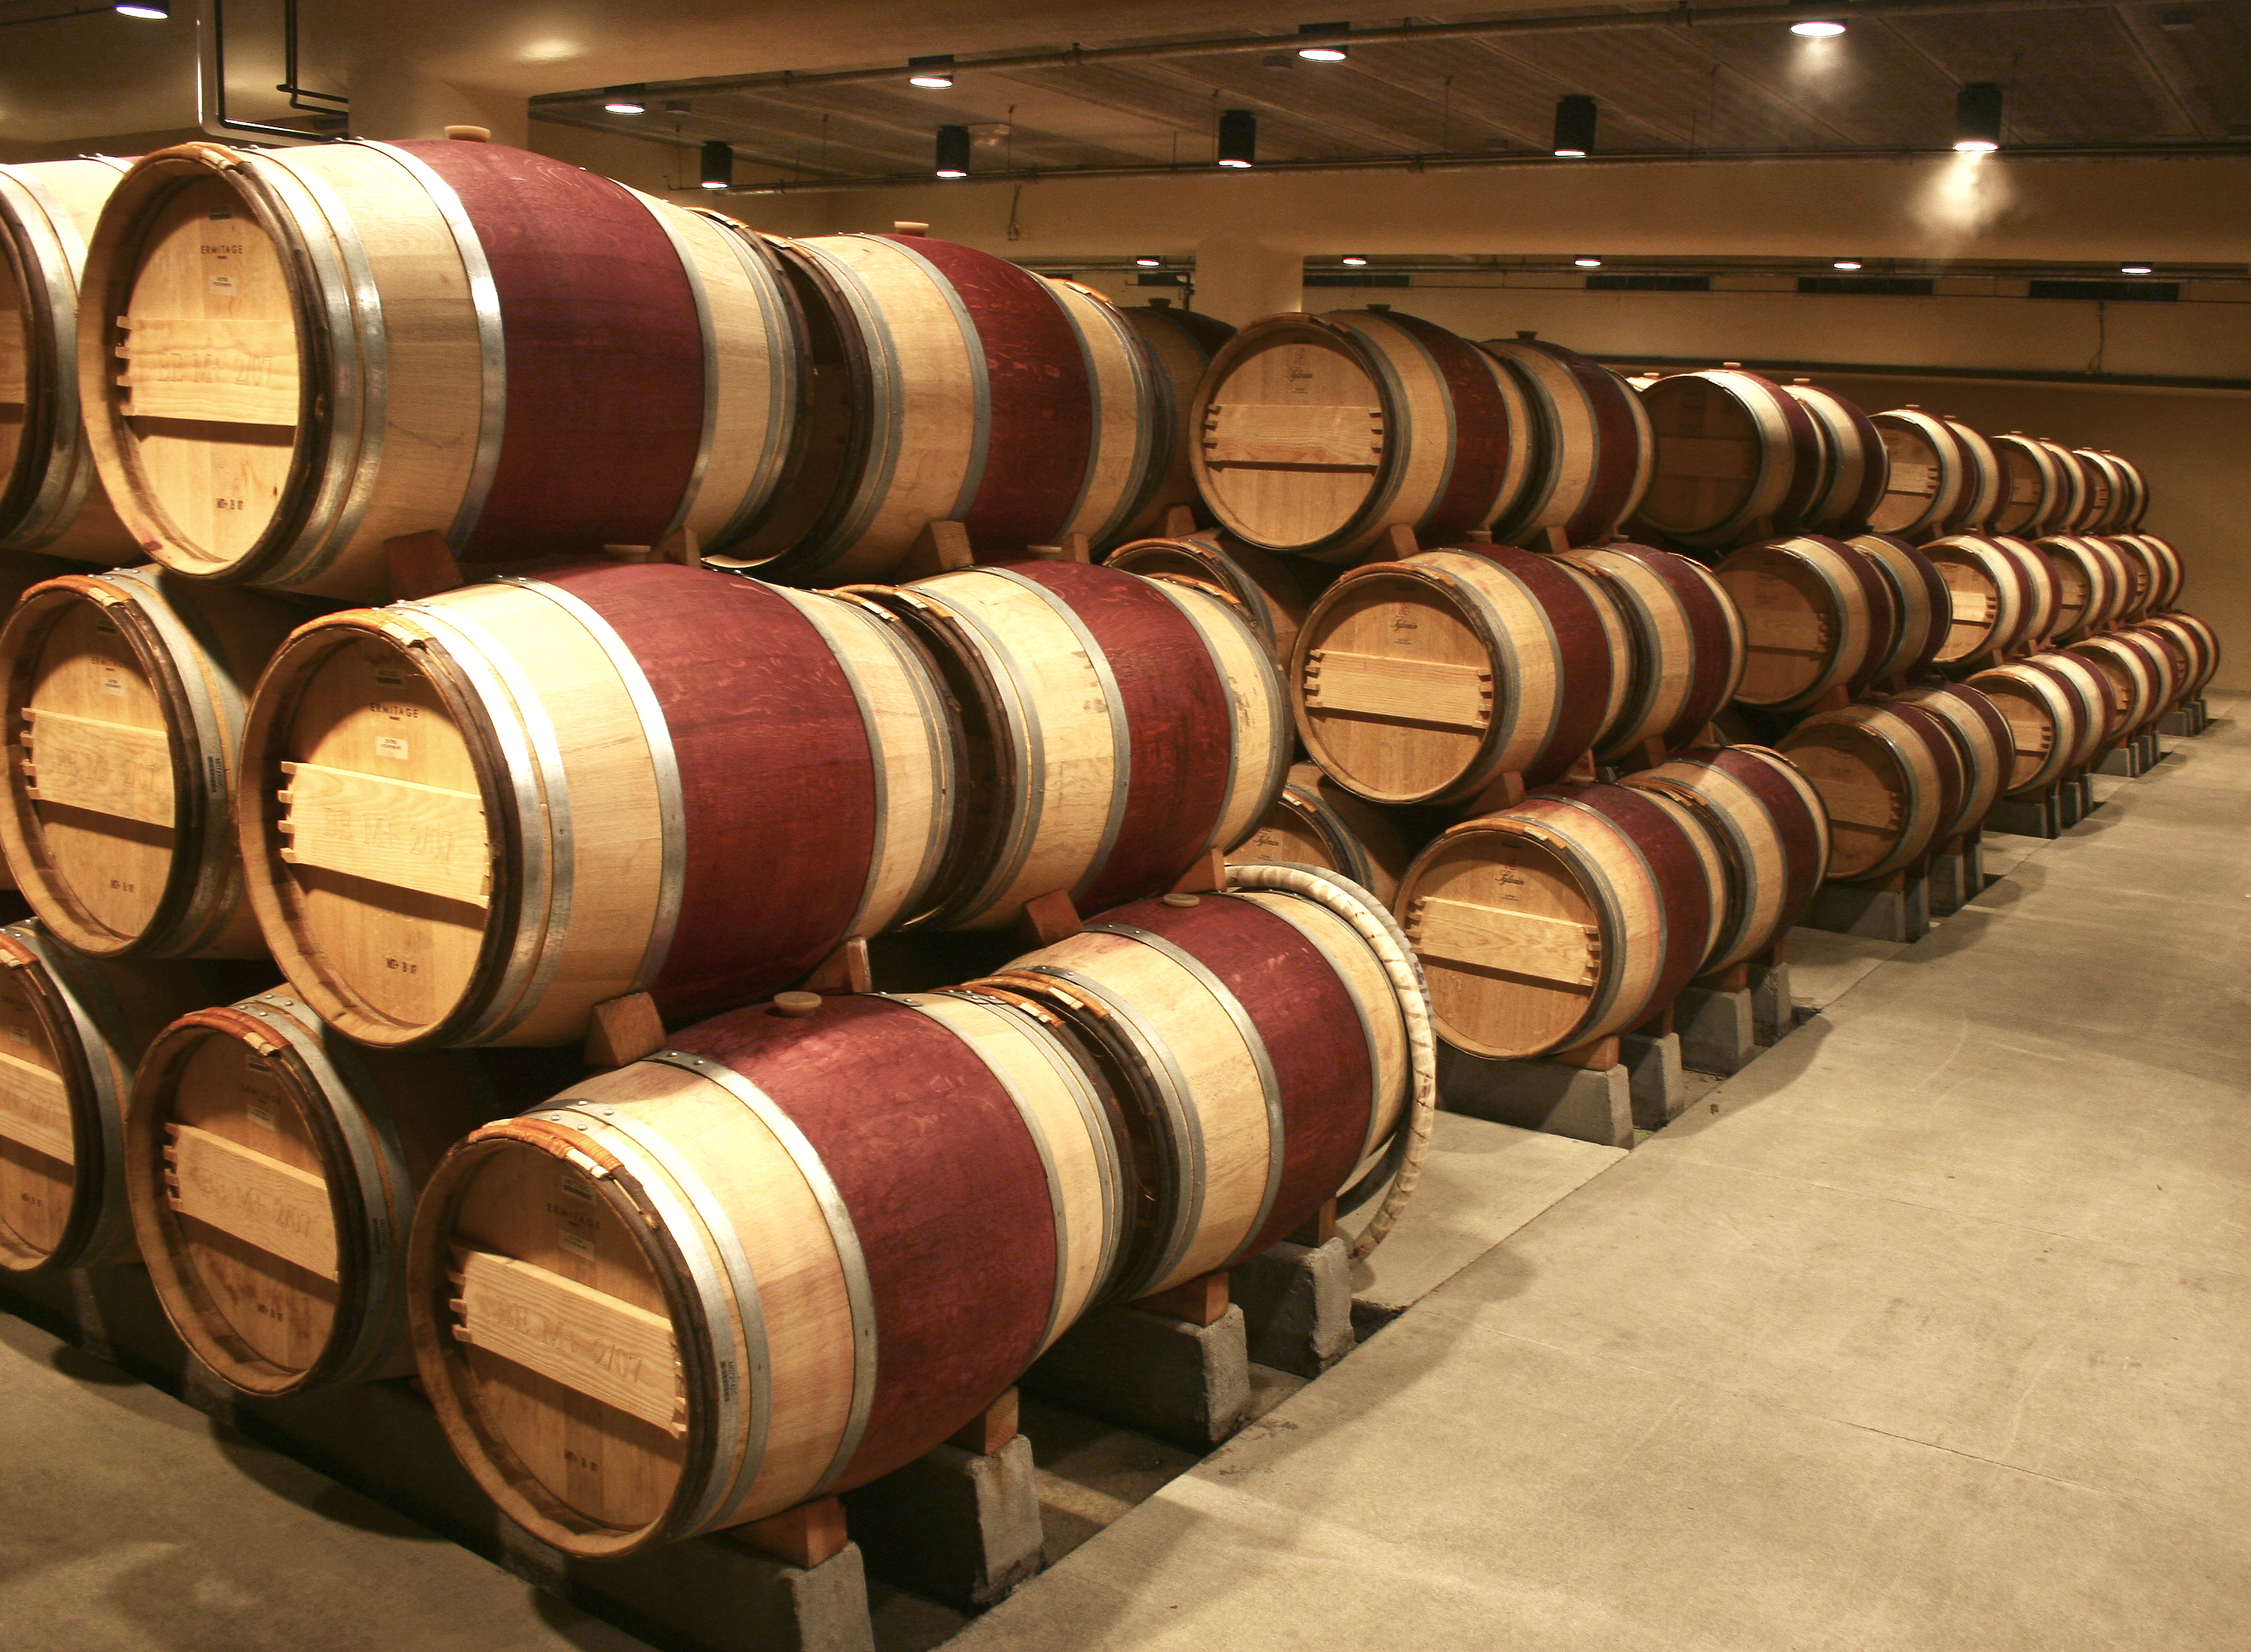 oak wine barrels. File:Wine Barrels.jpg Oak Wine Barrels I